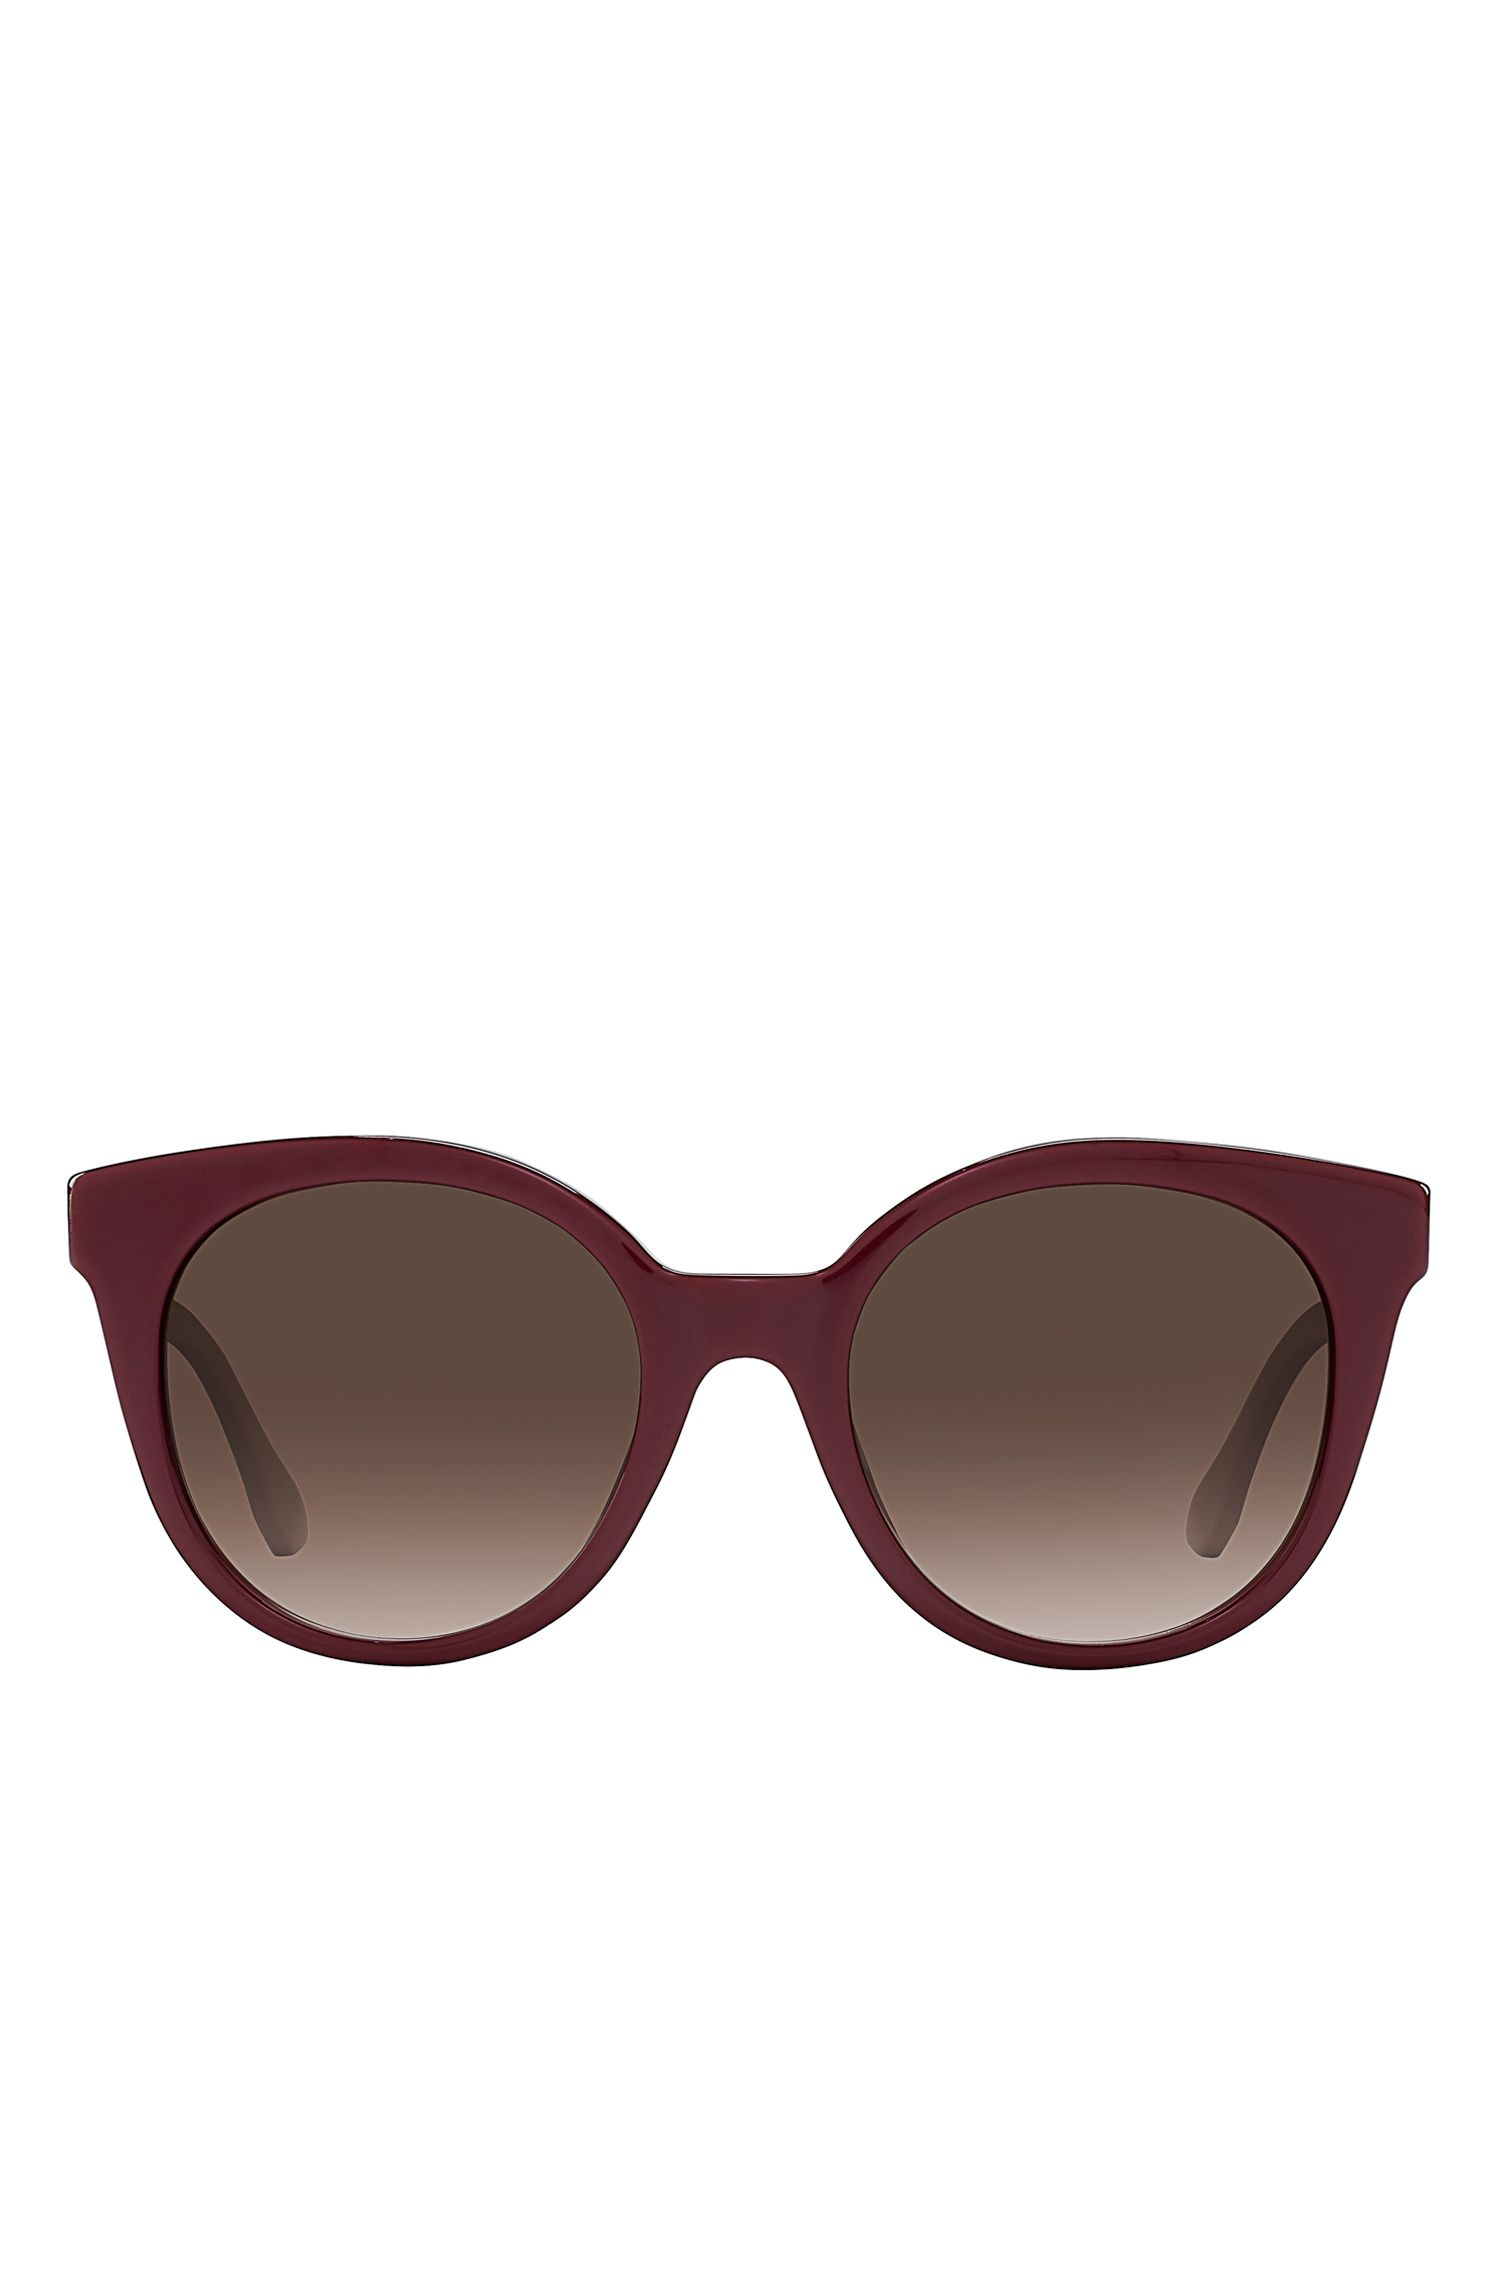 Burgundy Acetate Round Sunglasses | BOSS 0890S